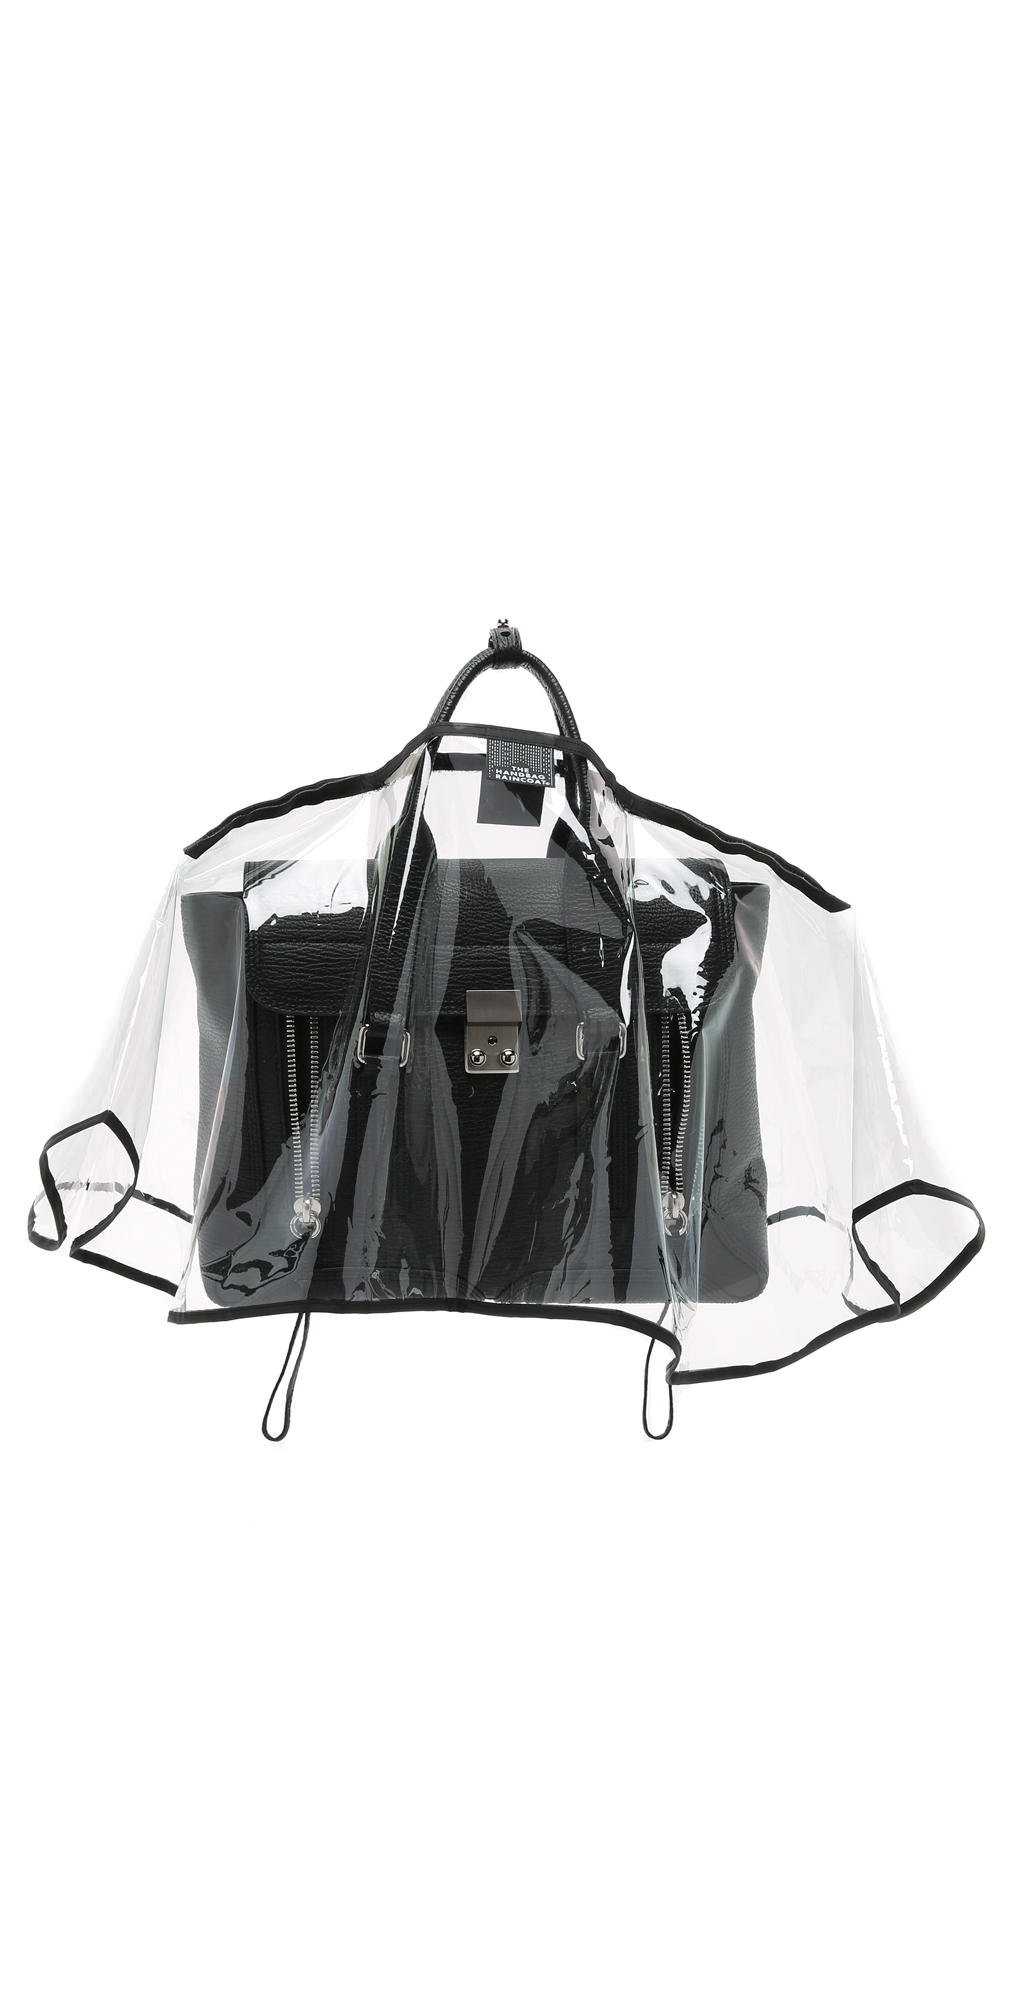 Medium City Slicker Handbag Raincoat The Handbag Raincoat